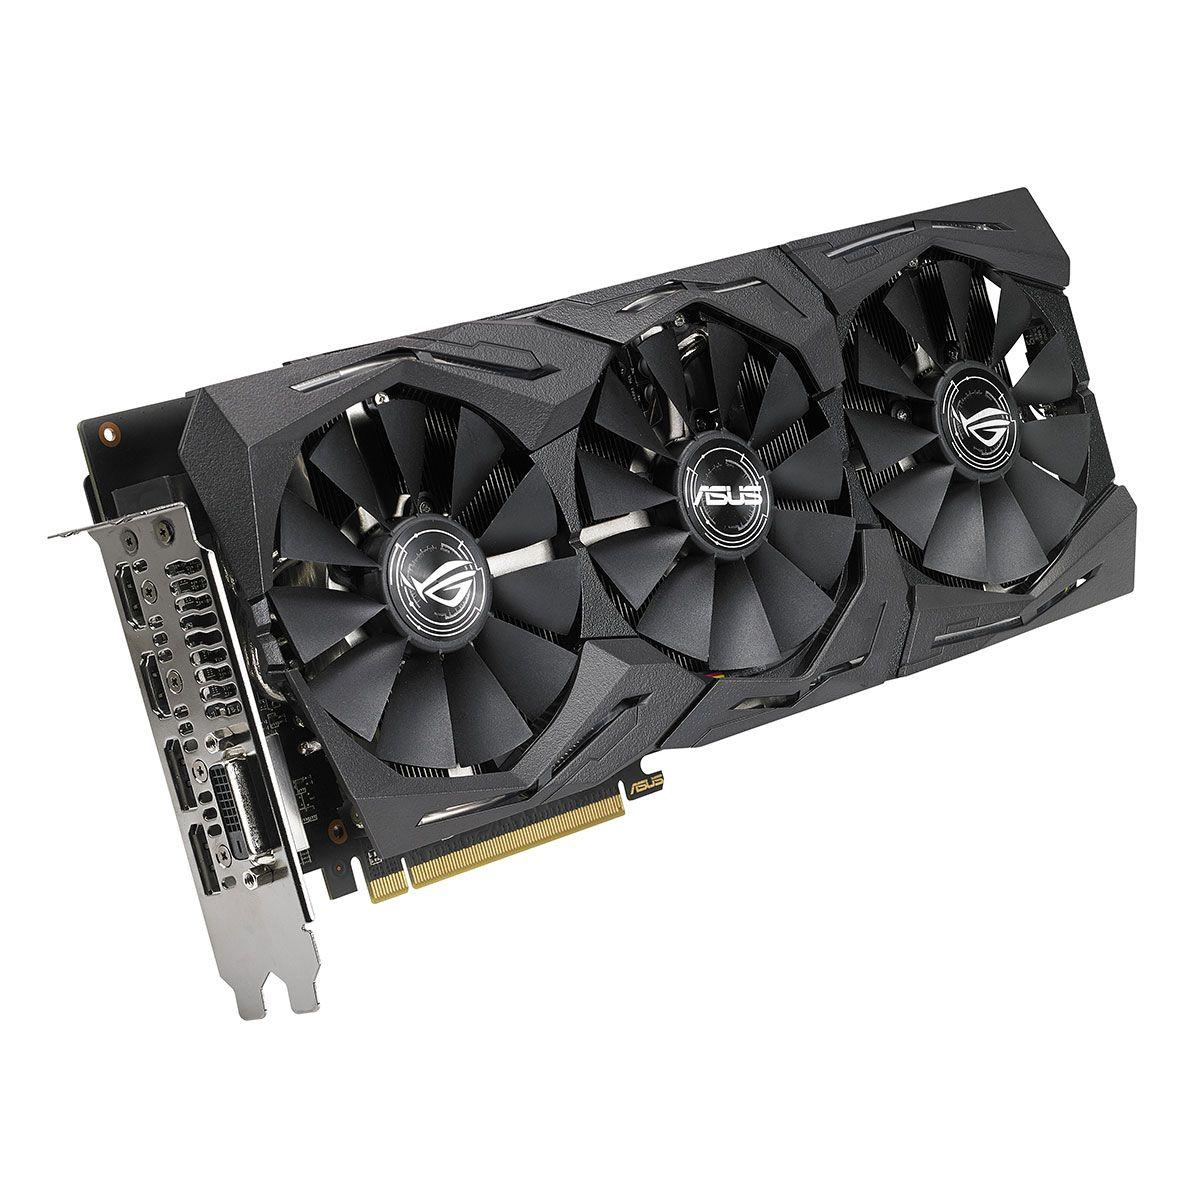 Asus ROG-STRIX-RX580-O8G-GAMING Carte graphique AMD Radeon RX 580 HDMI